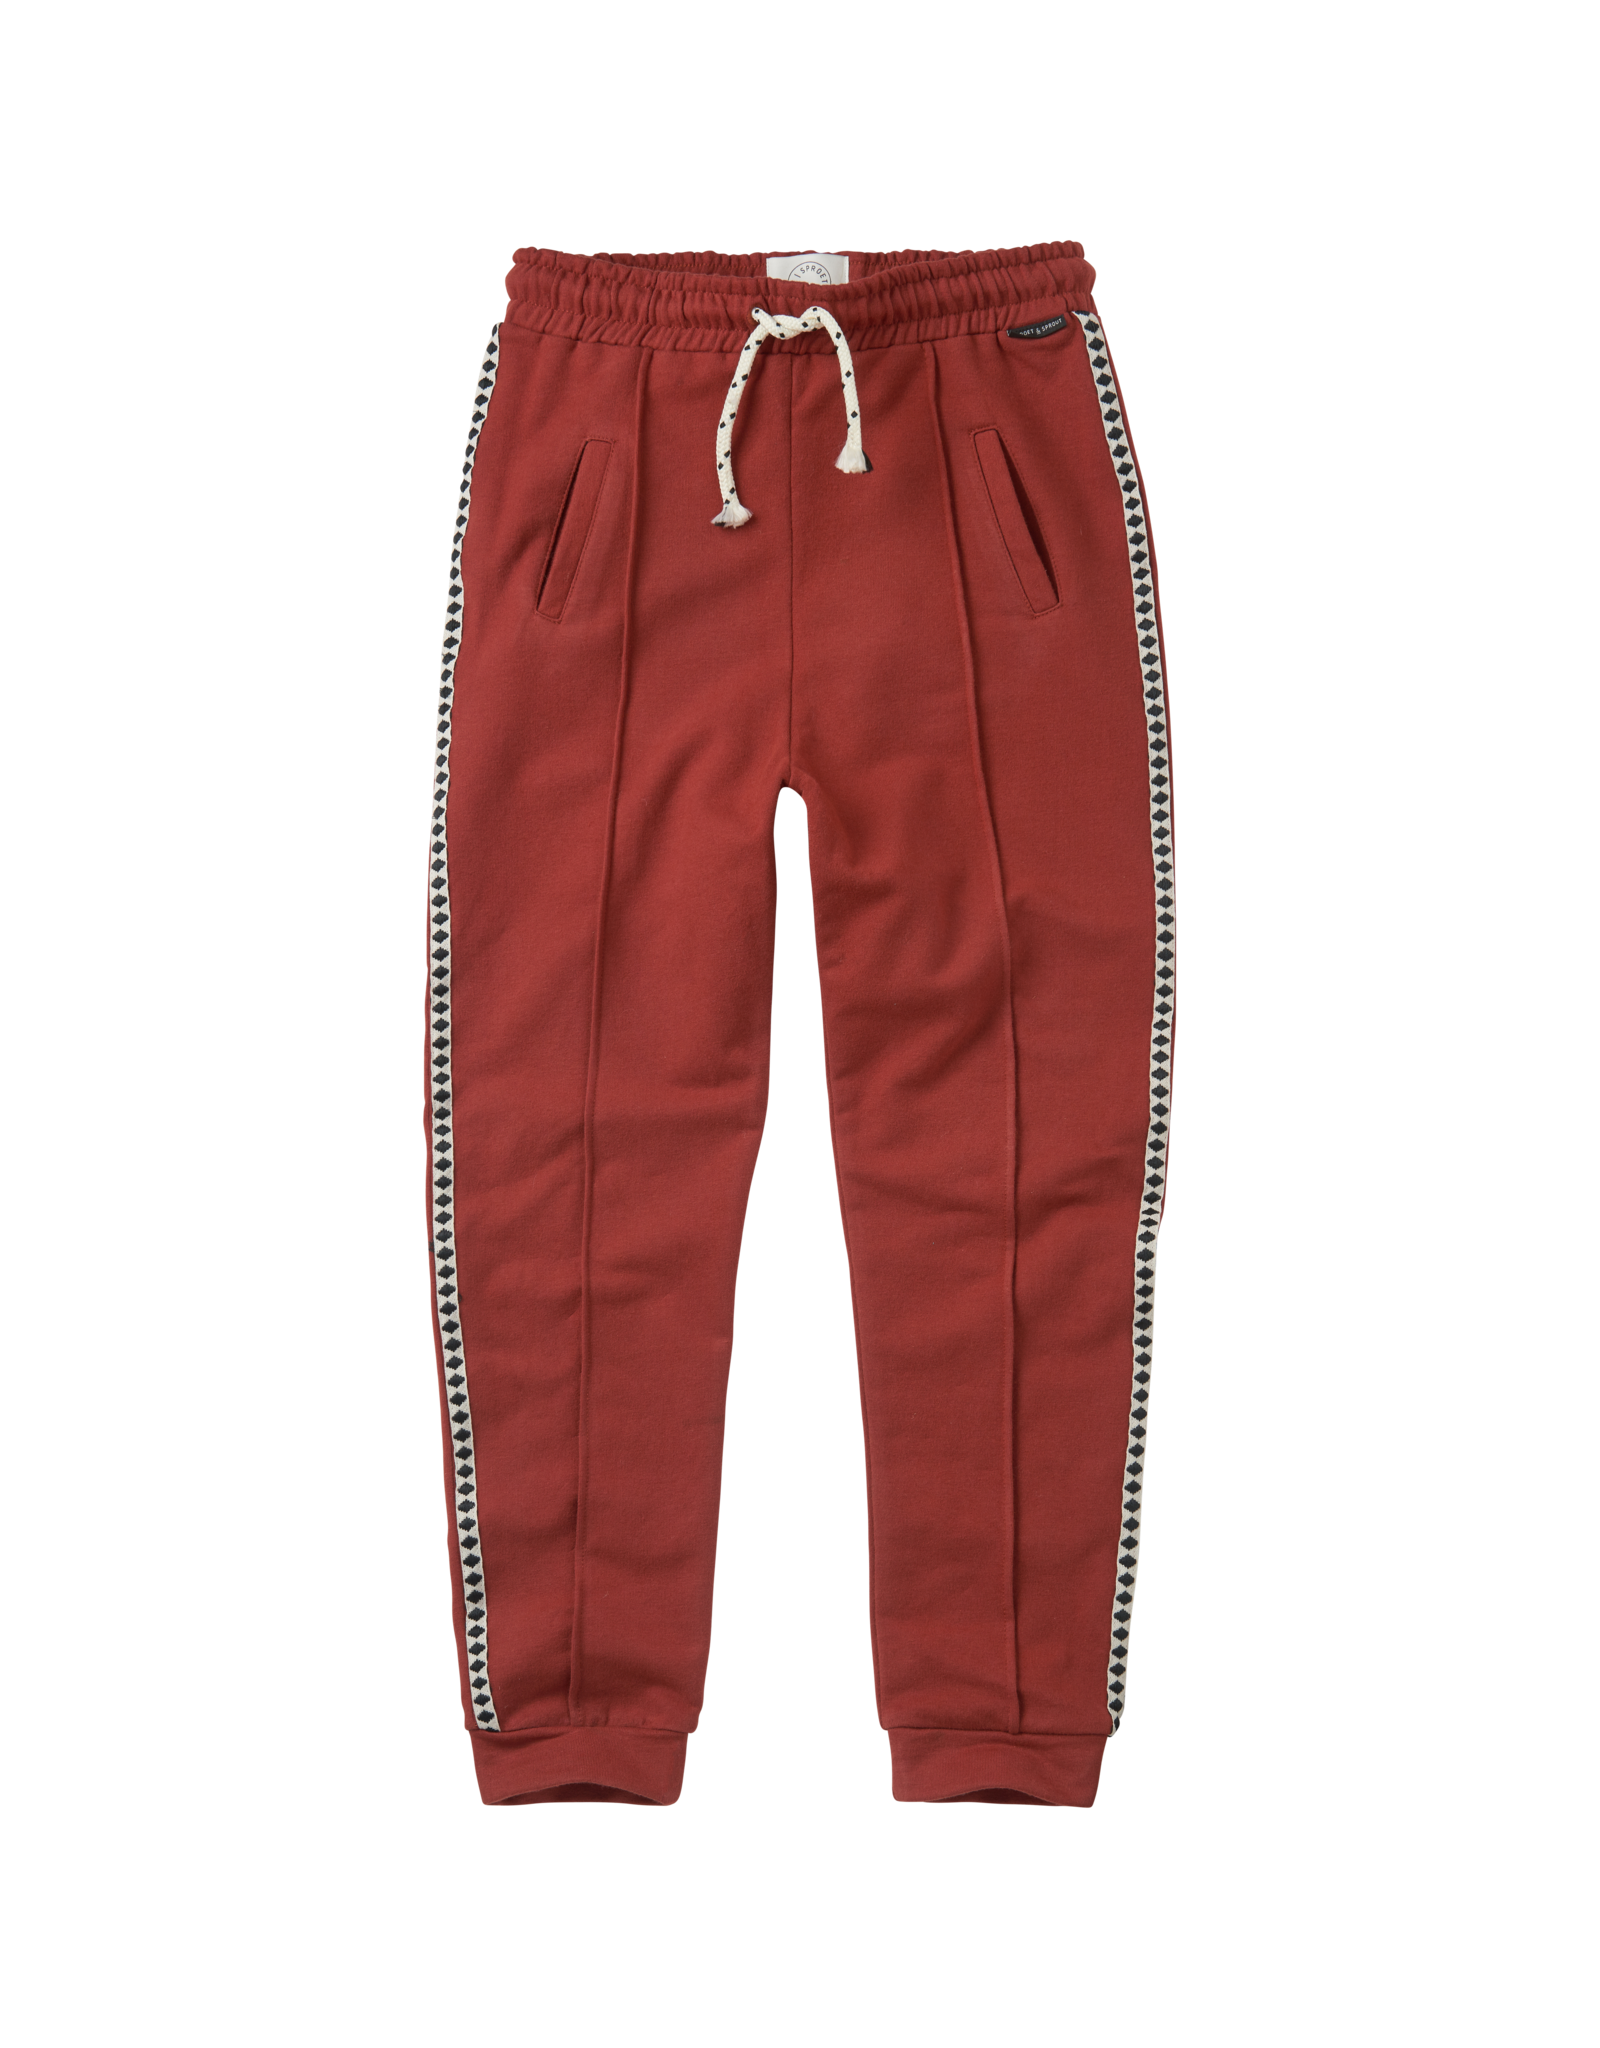 Sproet & Sprout Sproet & Sprout Trackpants-Beet Maroon